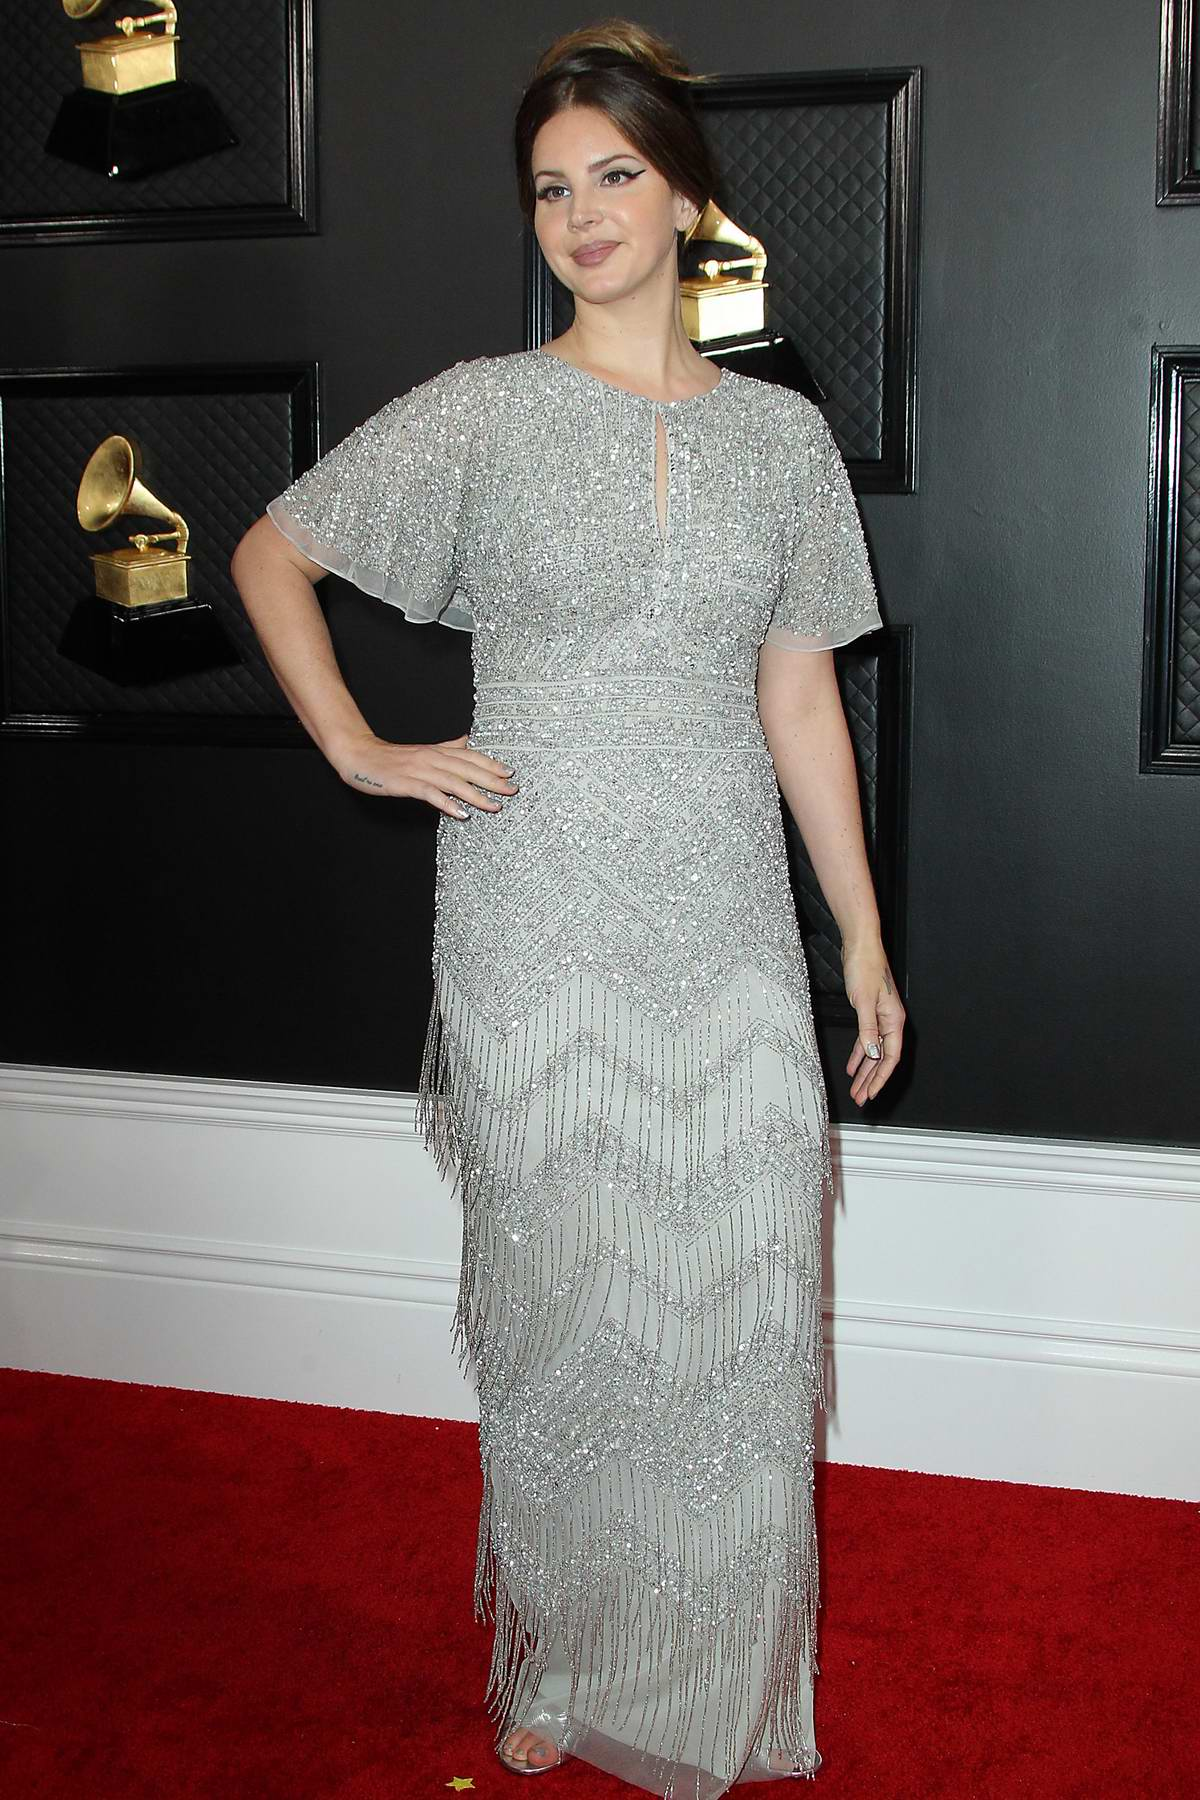 Lana Del Rey attends the 62nd Annual Grammy Awards at Staples Center in Los Angeles